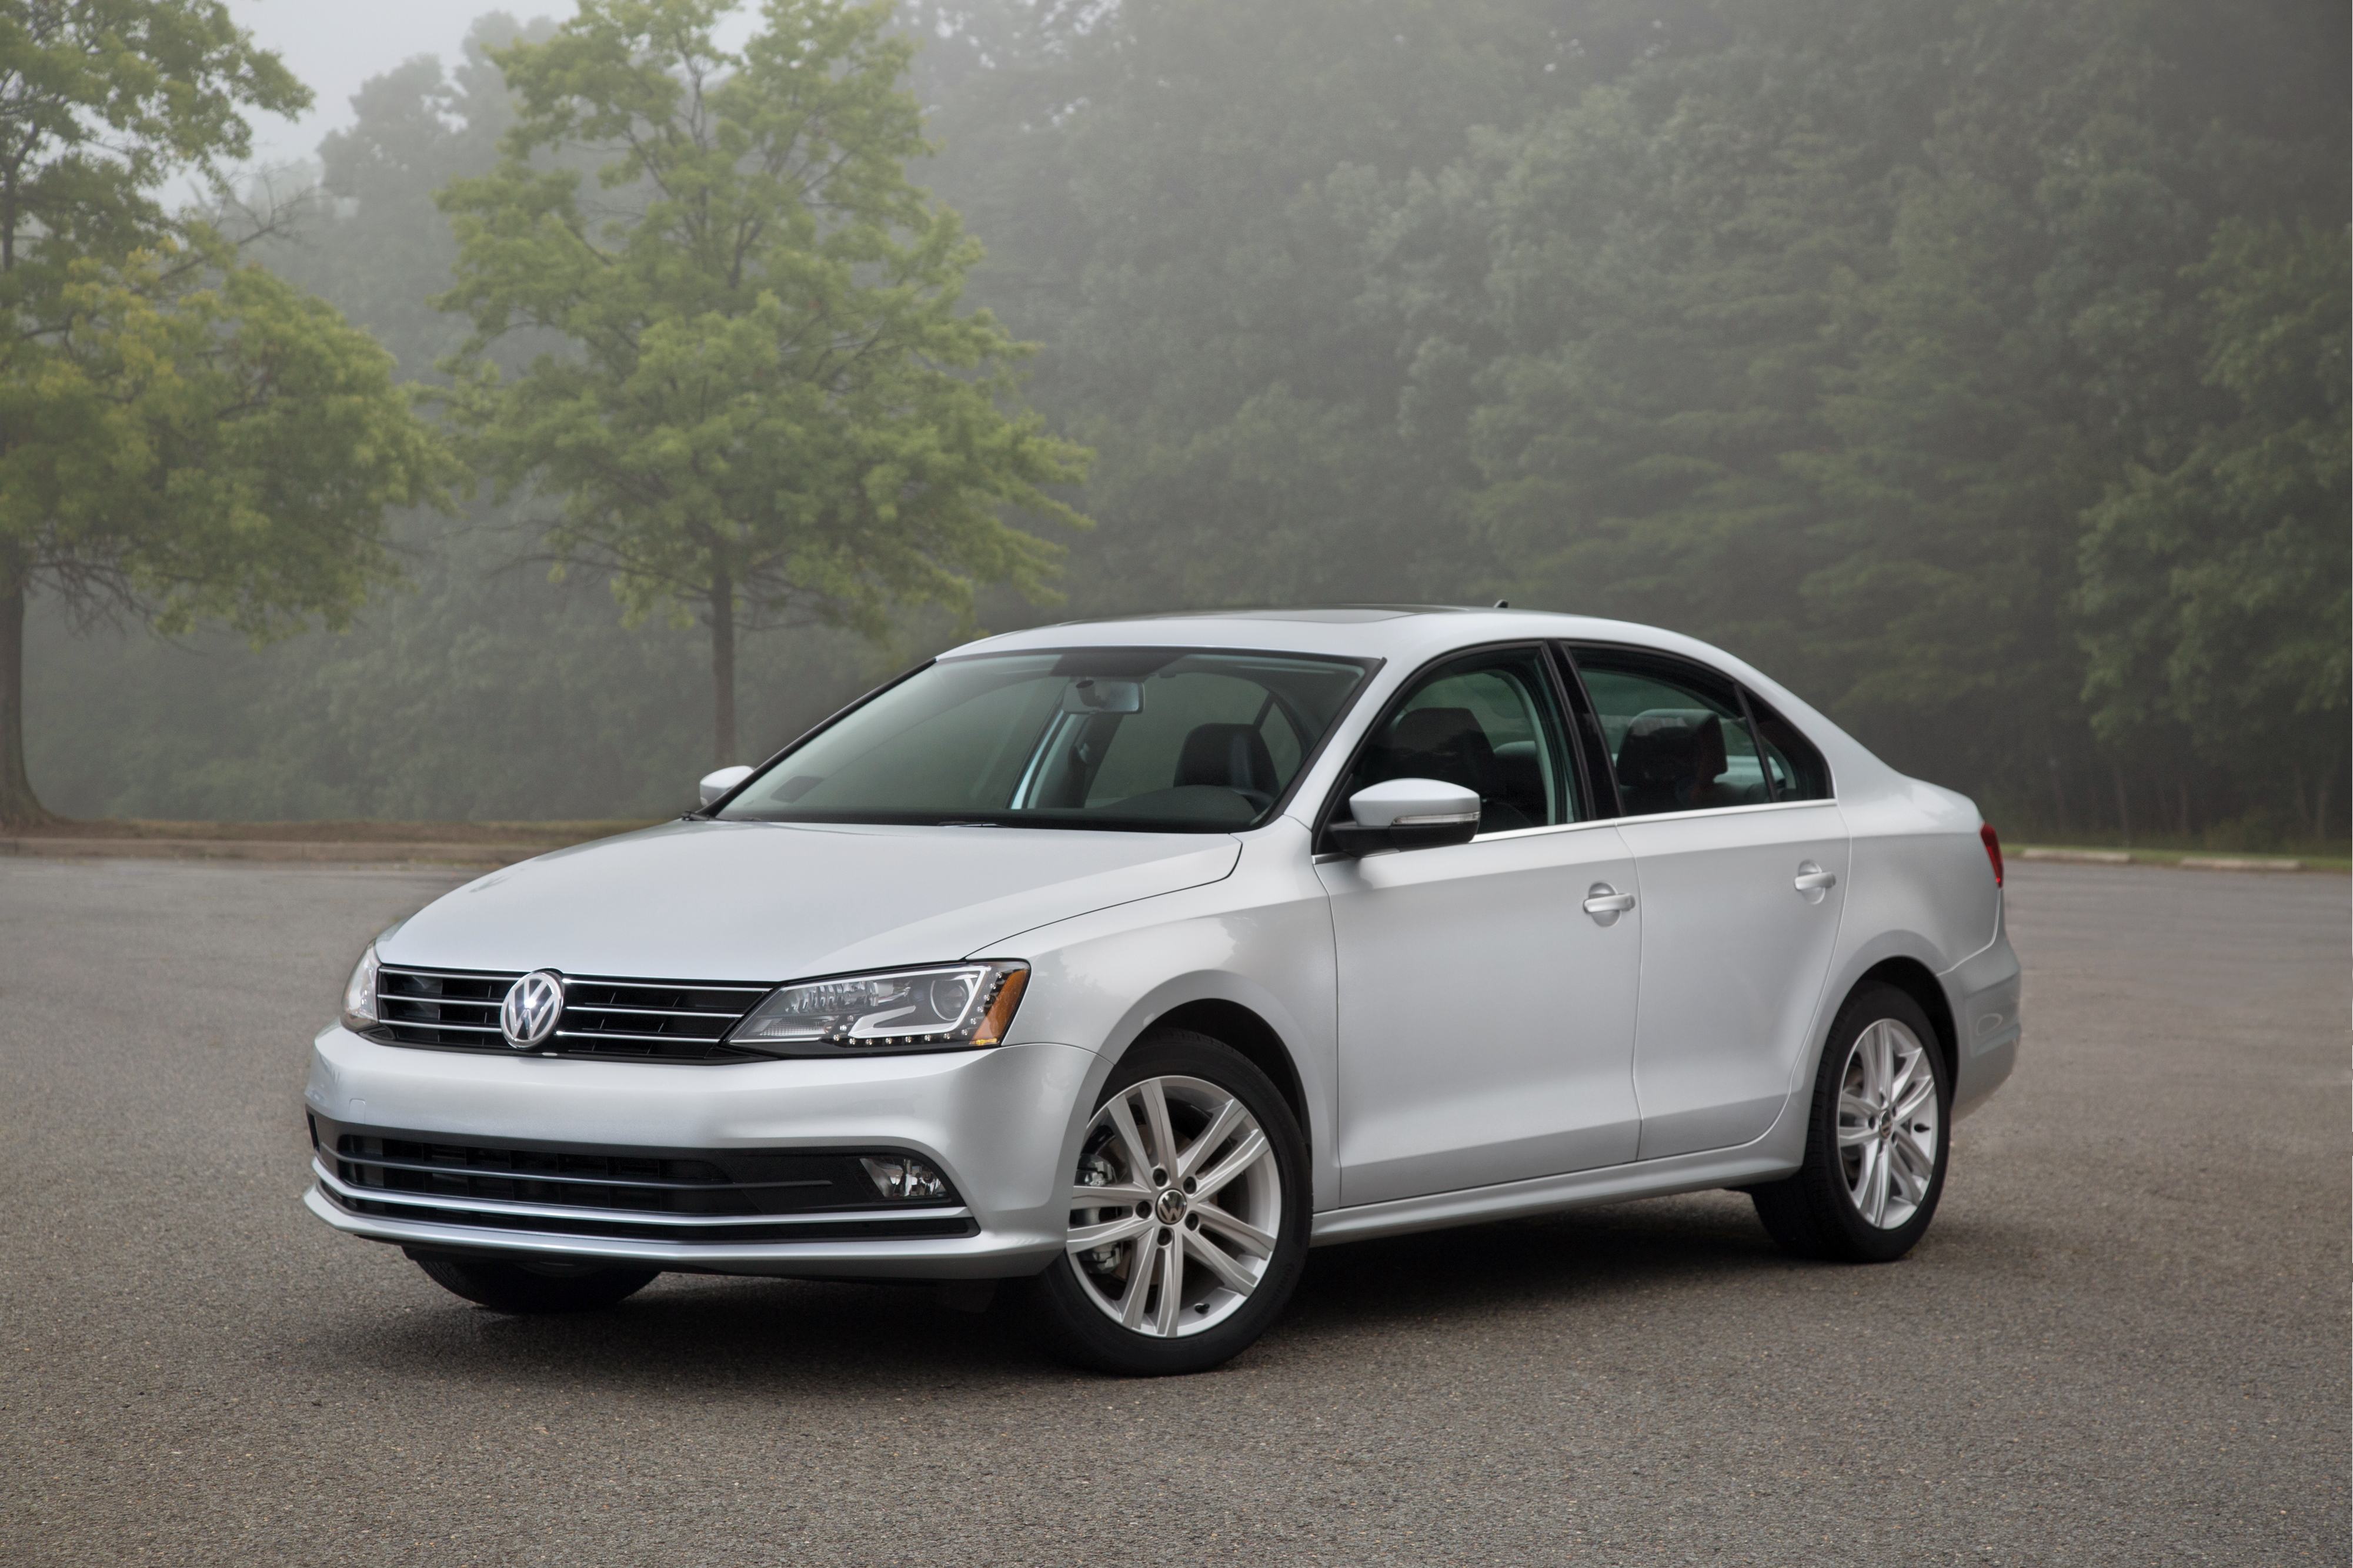 2016 volkswagen jetta specs. Black Bedroom Furniture Sets. Home Design Ideas